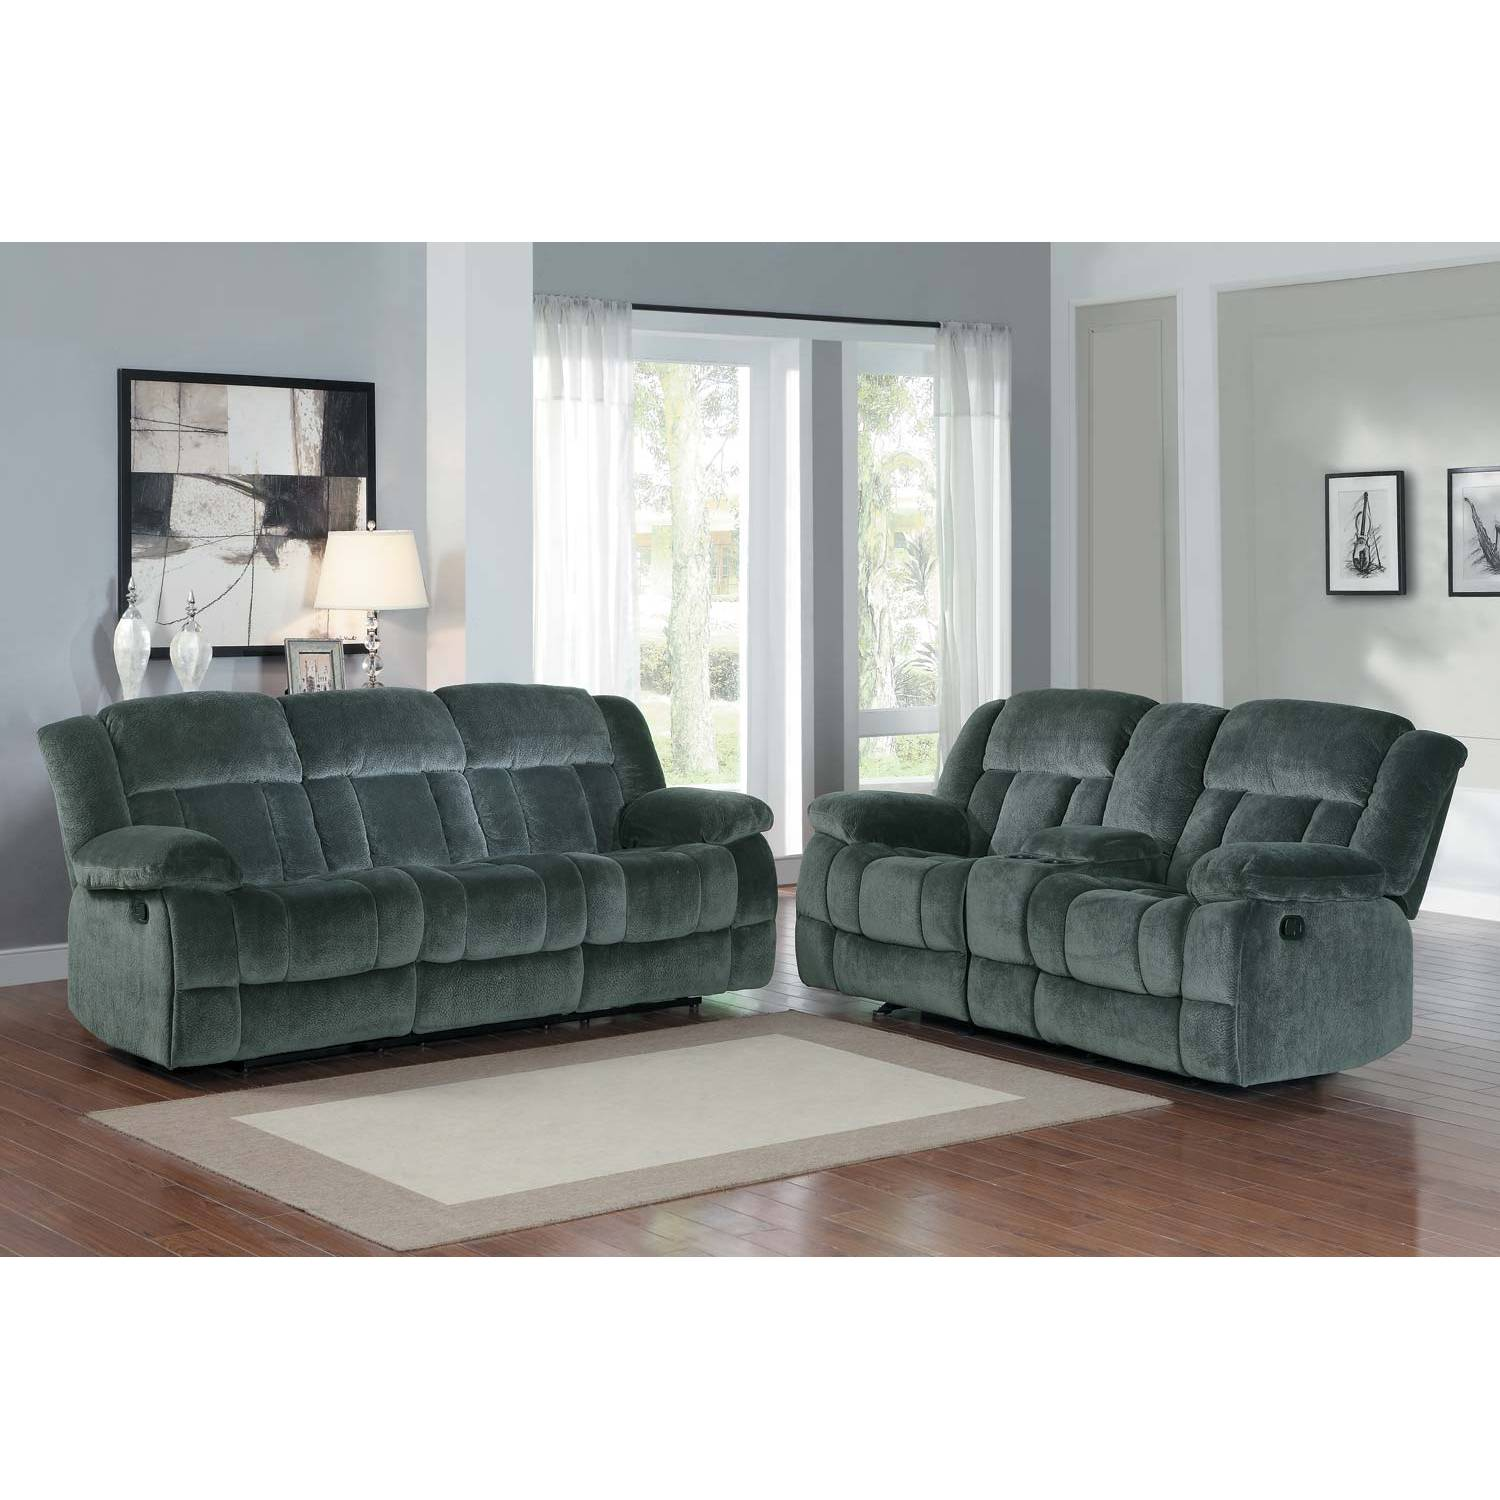 2pc Laurelton Reclining Sofa Set - Charcoal - Textured Plush Microfiber 9636CC Homelegance  sc 1 st  furnituredirects2u.com : microfiber reclining sofa sets - islam-shia.org